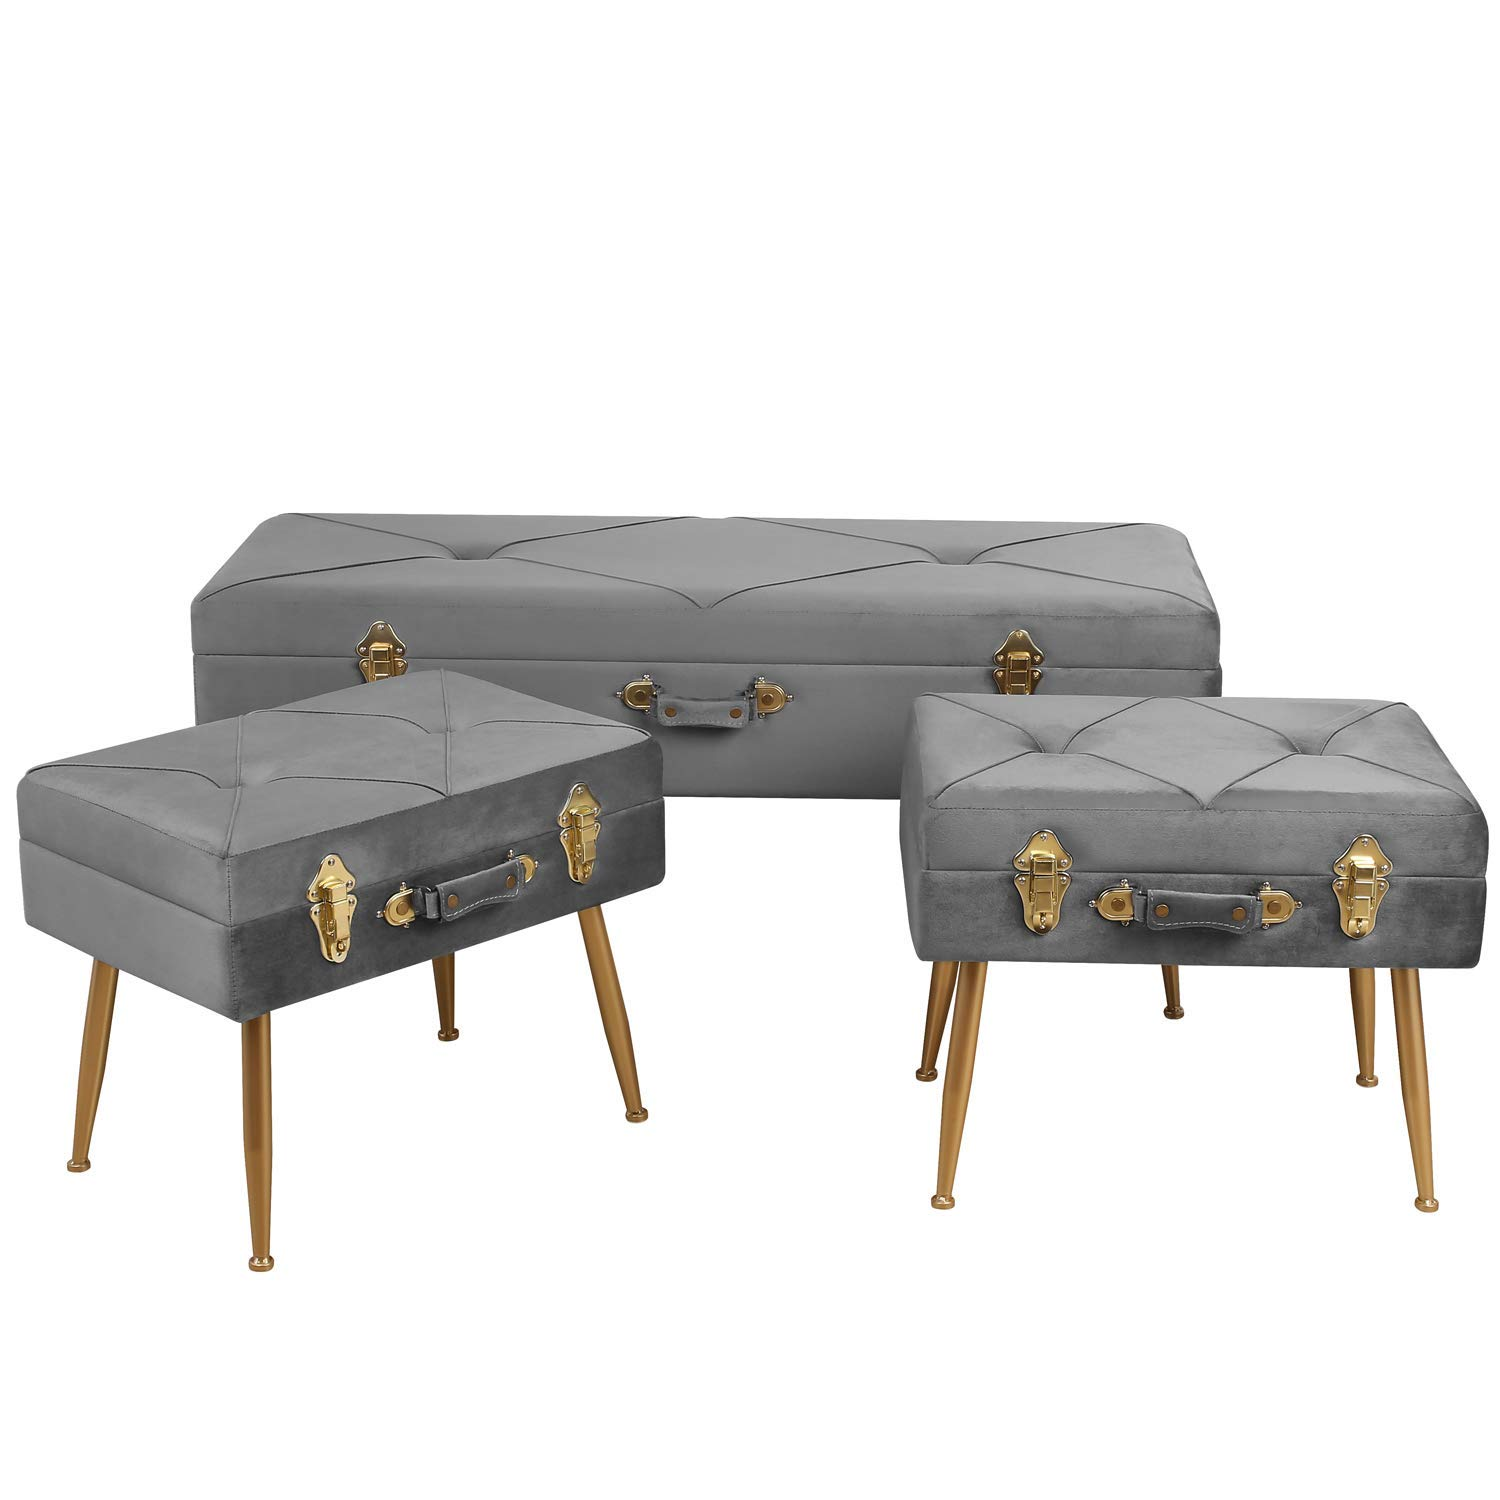 Remarkable Homecho Modern Storage Benches Ottoman Bed Shoe Bench Velvet Tufted Foot Rest Stool Pouf Organizer Padded Seat Portable Suitcase With Metal Leg 3 Pcs Ncnpc Chair Design For Home Ncnpcorg